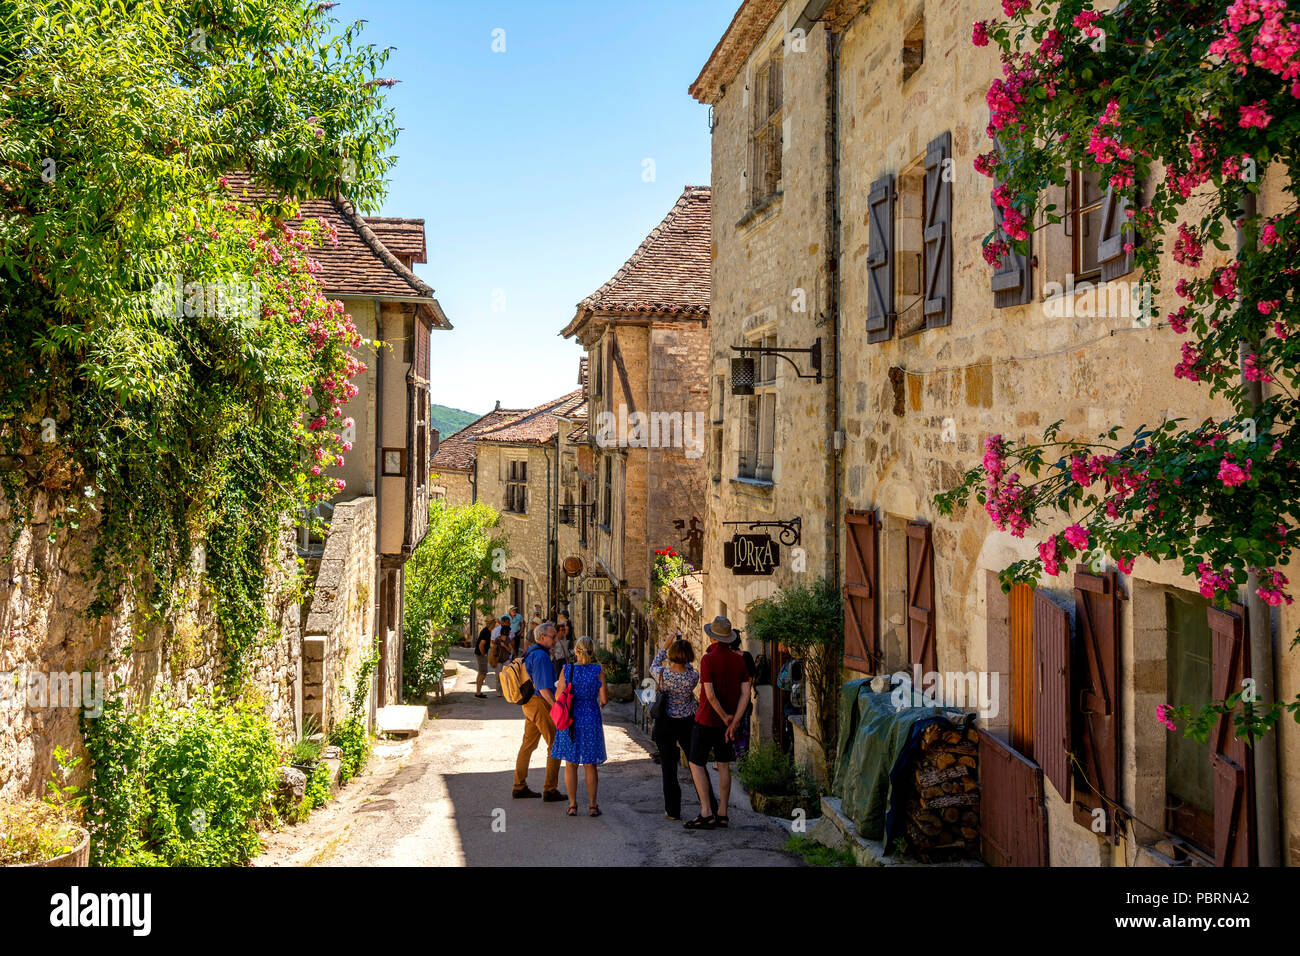 Saint-Cirq-Lapopie on  Santiago de Compostela pilgrimage road, labelled as a Les Plus Beaux Villages de France or The Most Beautiful Villages of Franc Stock Photo